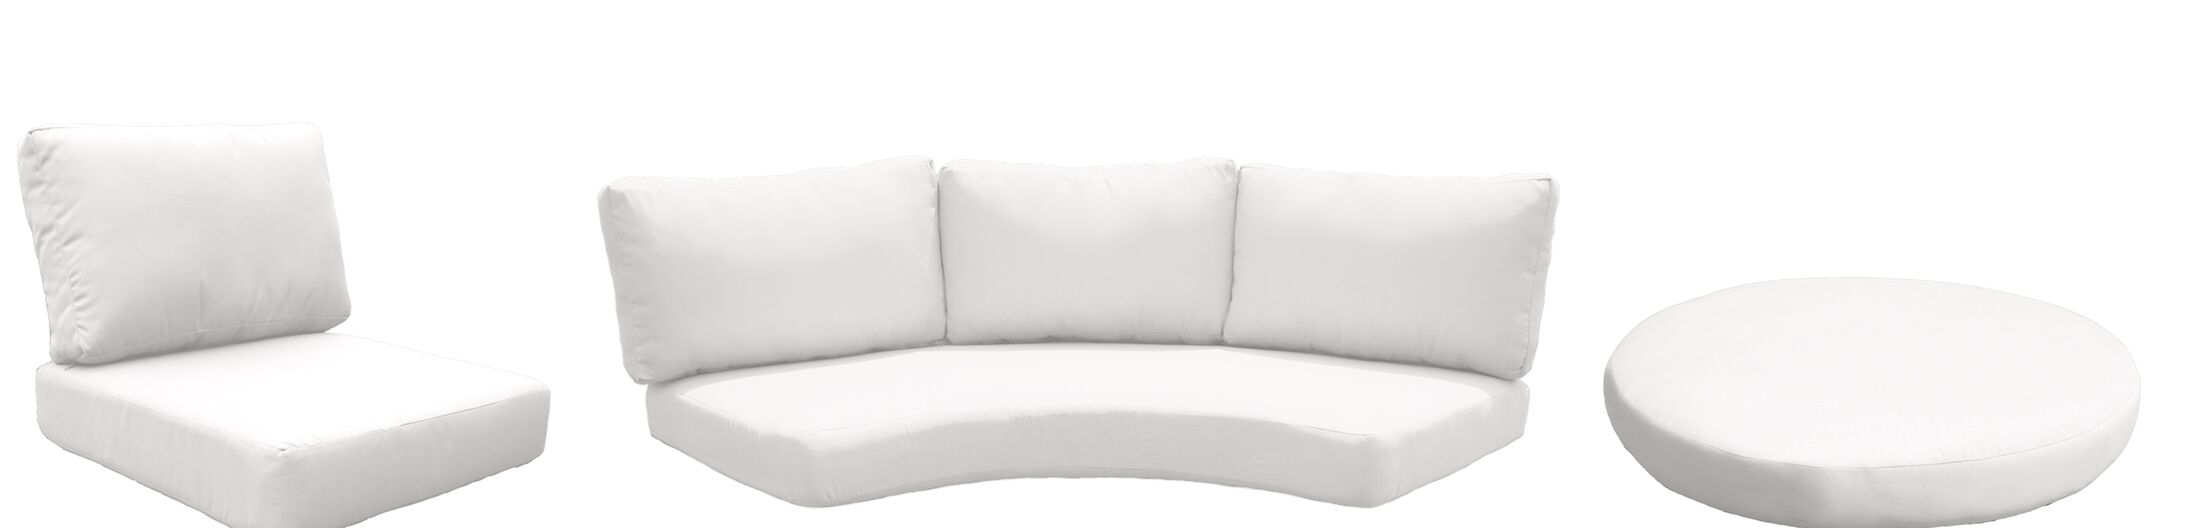 Fairmont 9 Piece Outdoor Cushion Set Fabric: White